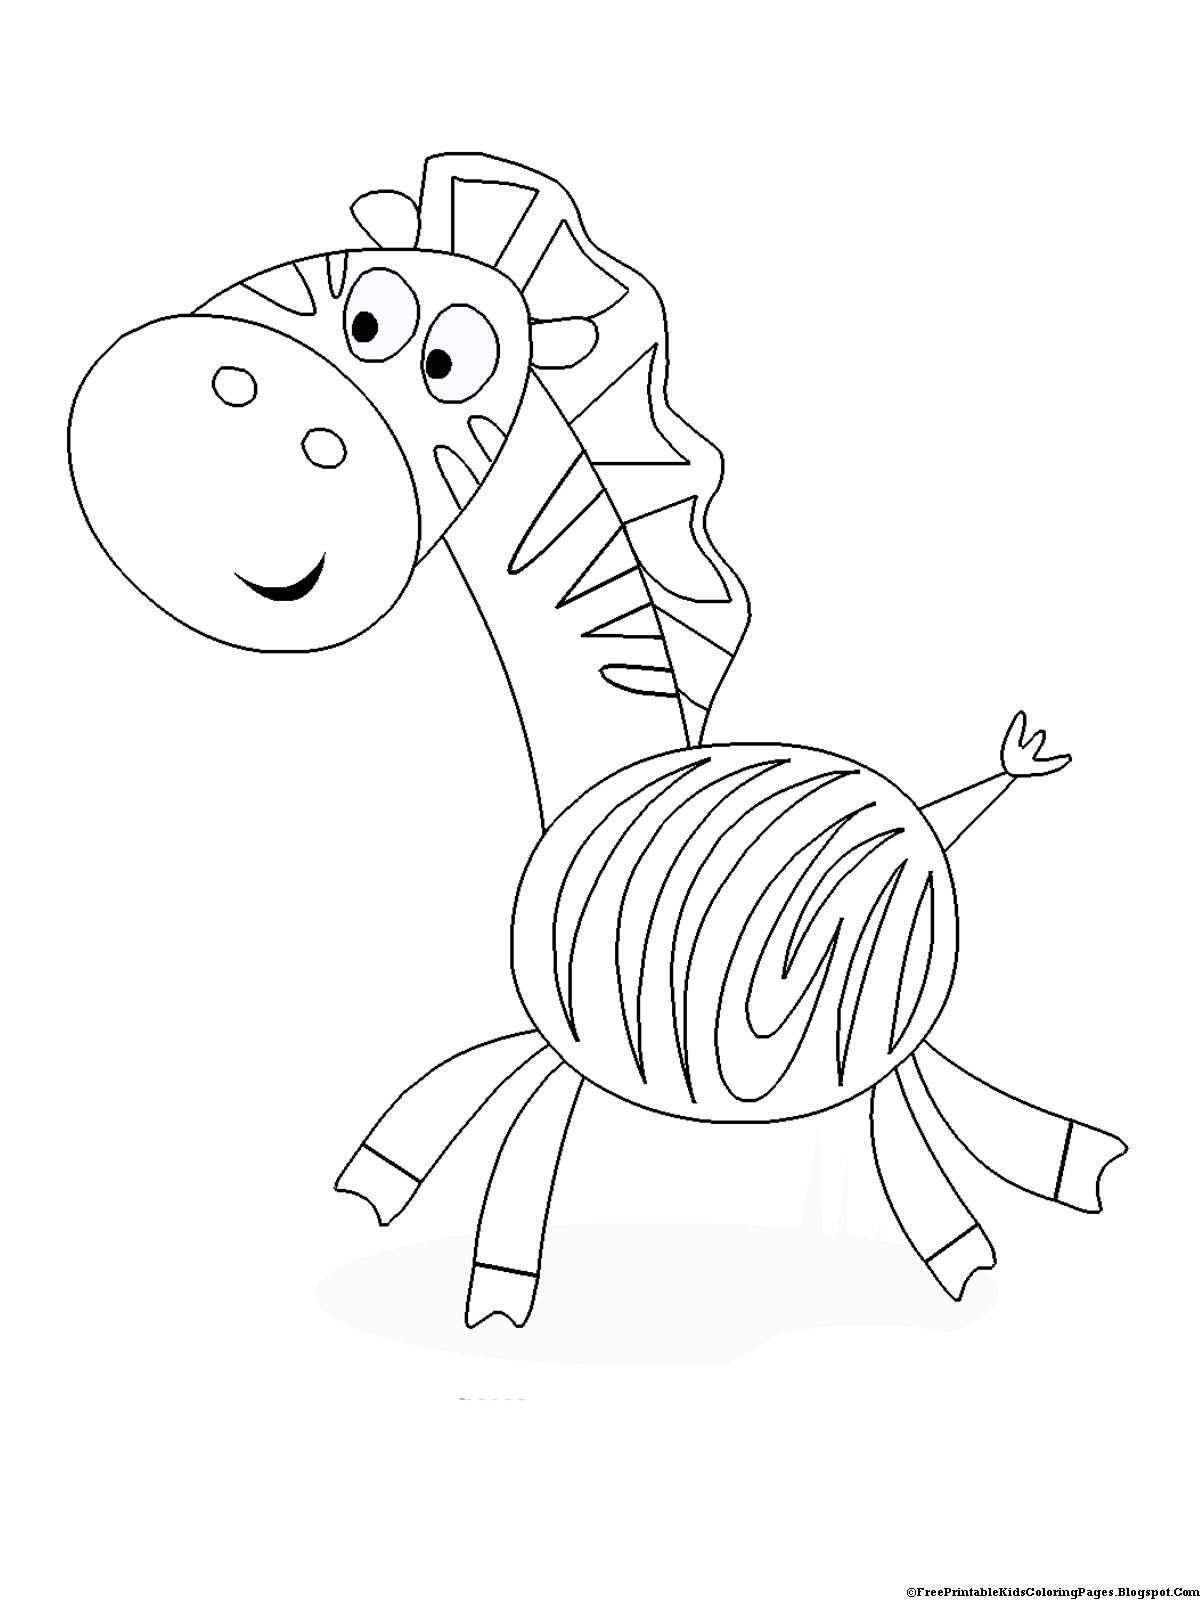 colored pages zebra coloring pages free printable kids coloring pages pages colored